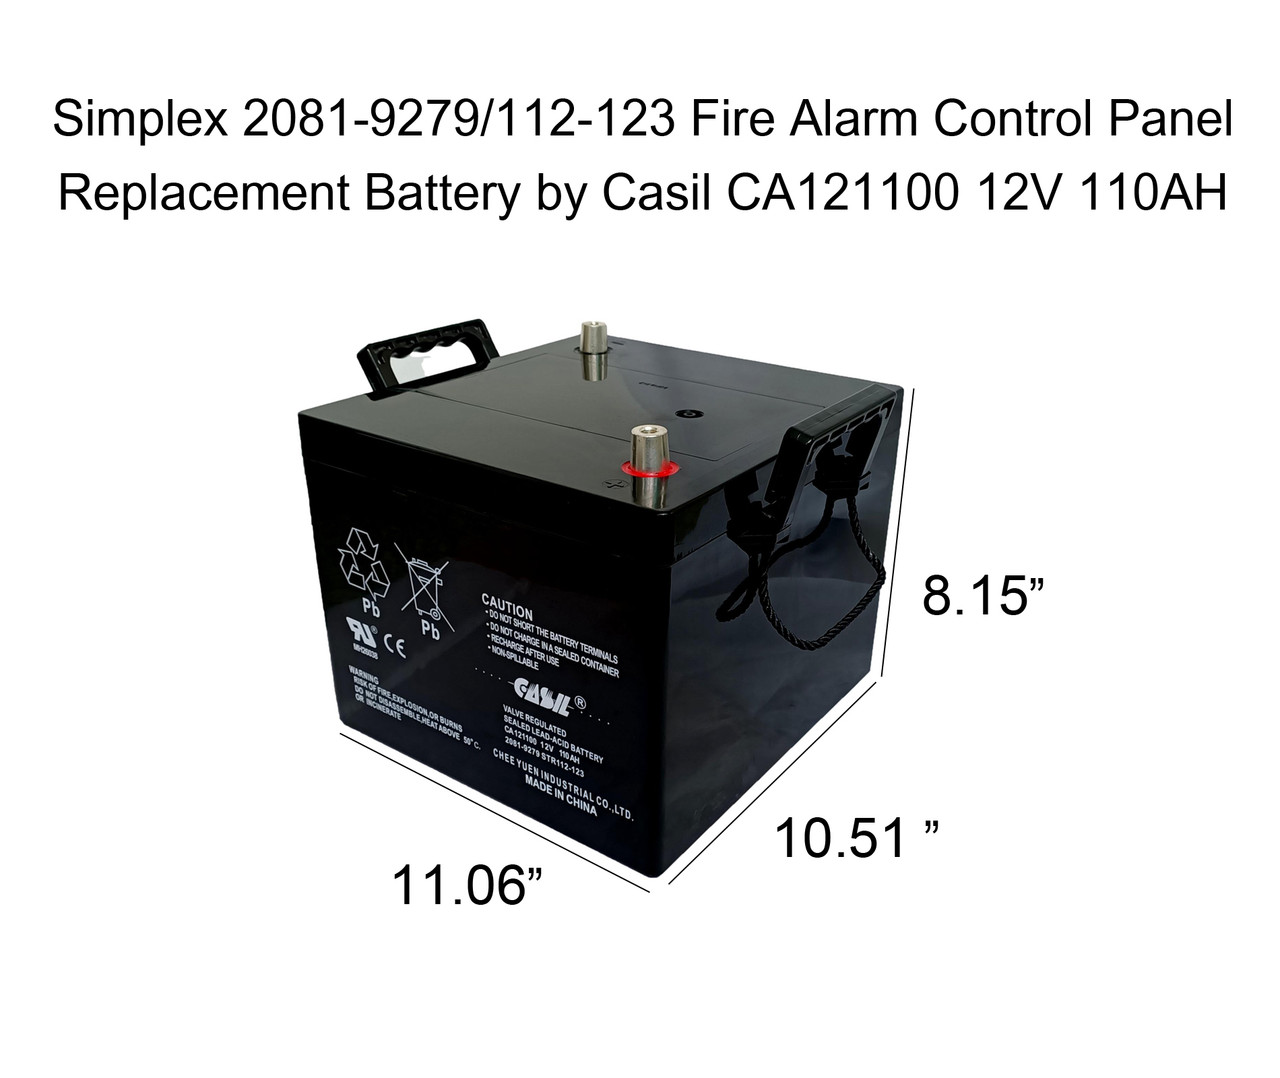 Simplex Grinnell 2081-9279 Fire Alarm Control Panel Battery 12V 110ah